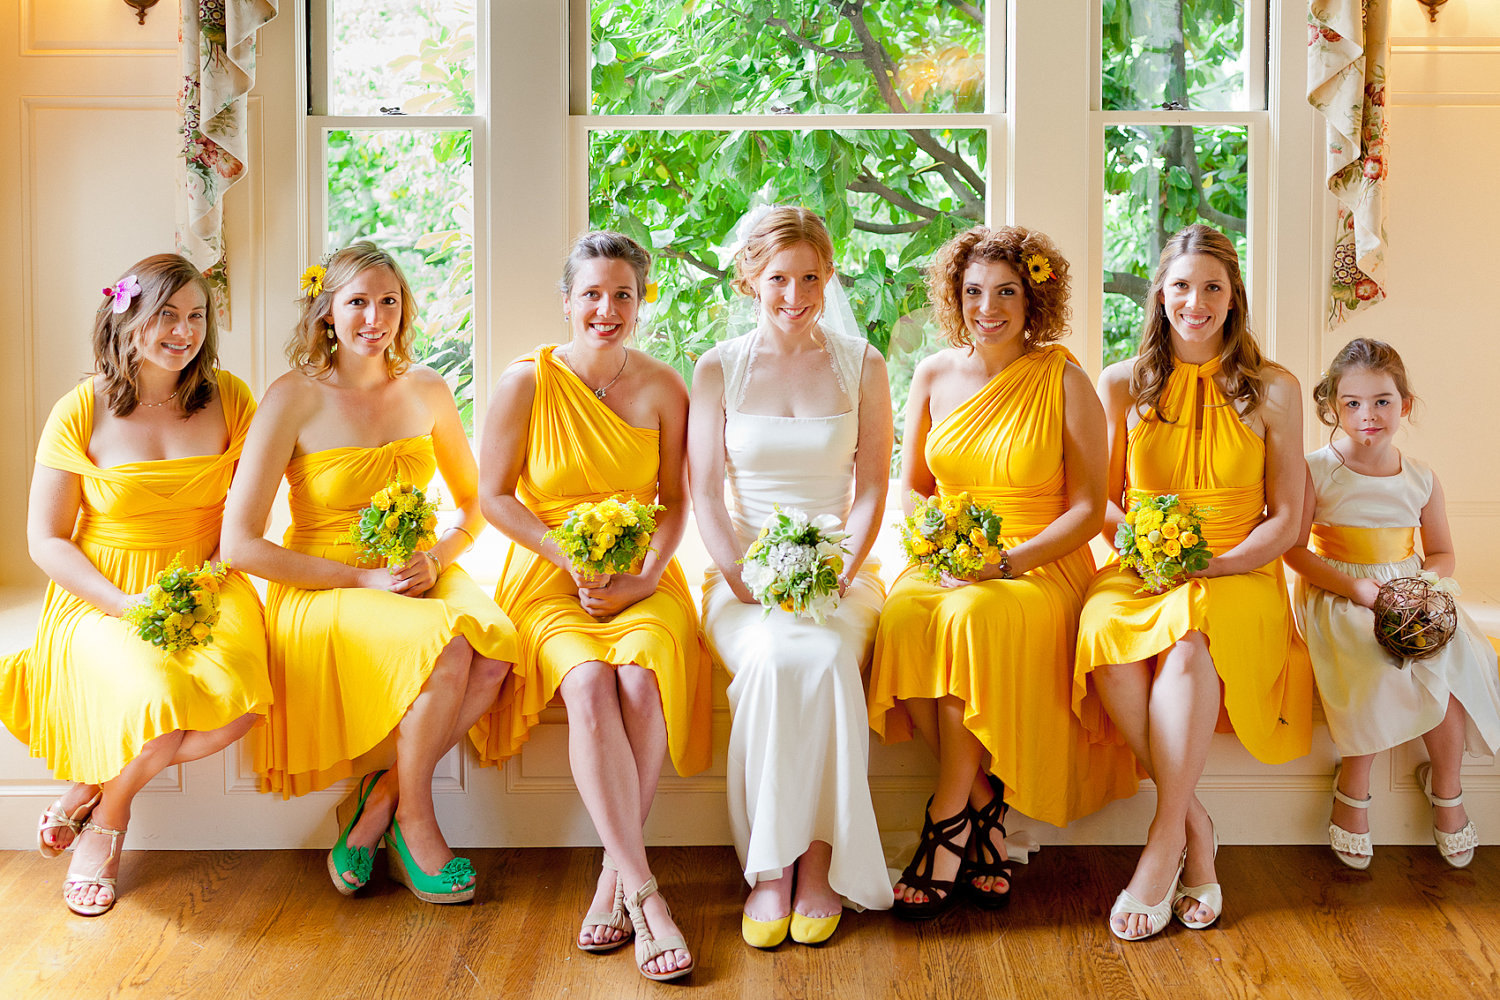 WhiteAzalea Bridesmaid Dresses: Bright Yellow Bridesmaid Dress